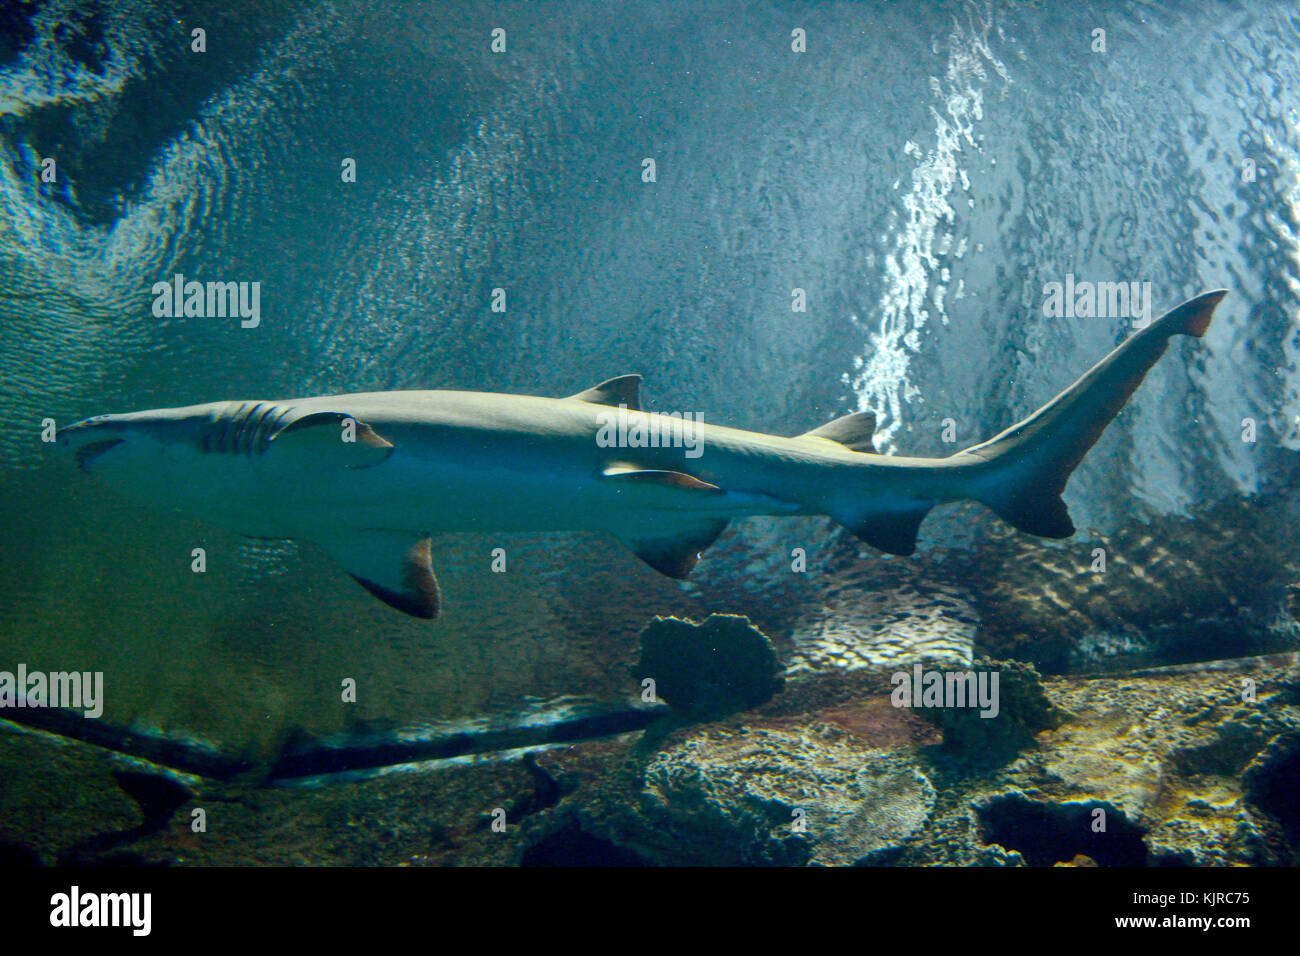 Blacktip reef shark (Carcharhinus melanopterus) is identified by the prominent black tips on its fins. Stock Photo